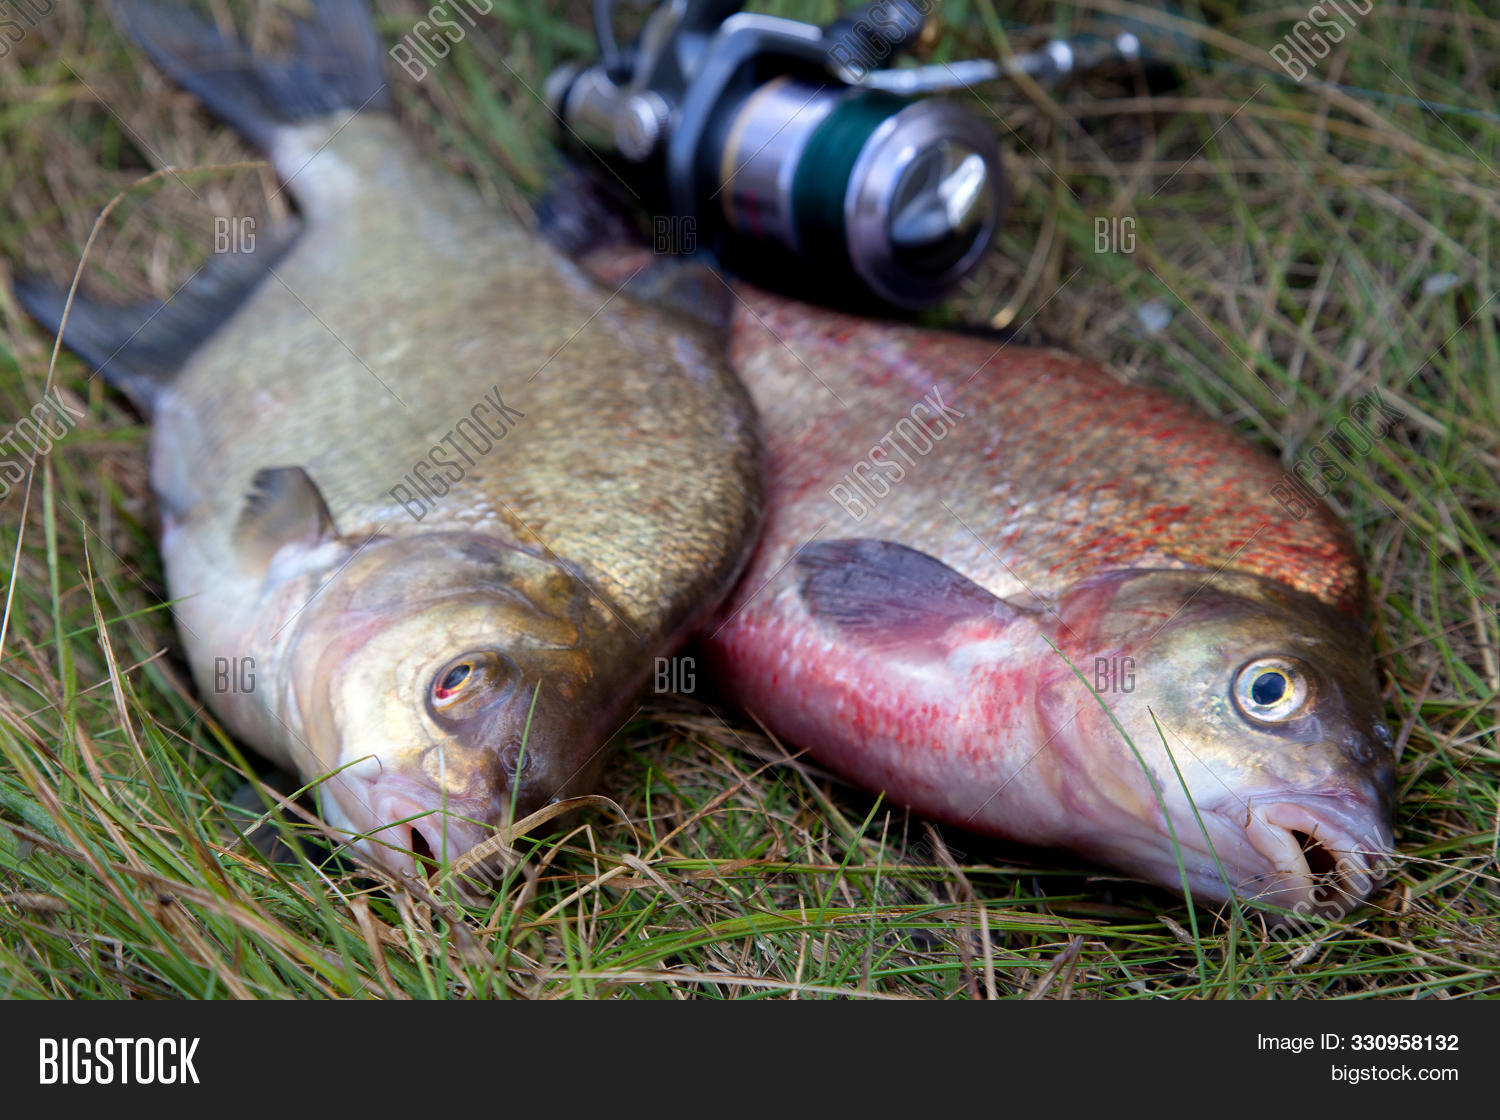 activity,angling,animal,autumn,big,catch,equipment,esox,fish,fishing,freshwater,head,hobby,leisure,lucius,lure,natural,nature,northern,outdoor,pike,predator,raw,river,scales,season,spinning,sport,trophy,water,wild,wildlife,wooden